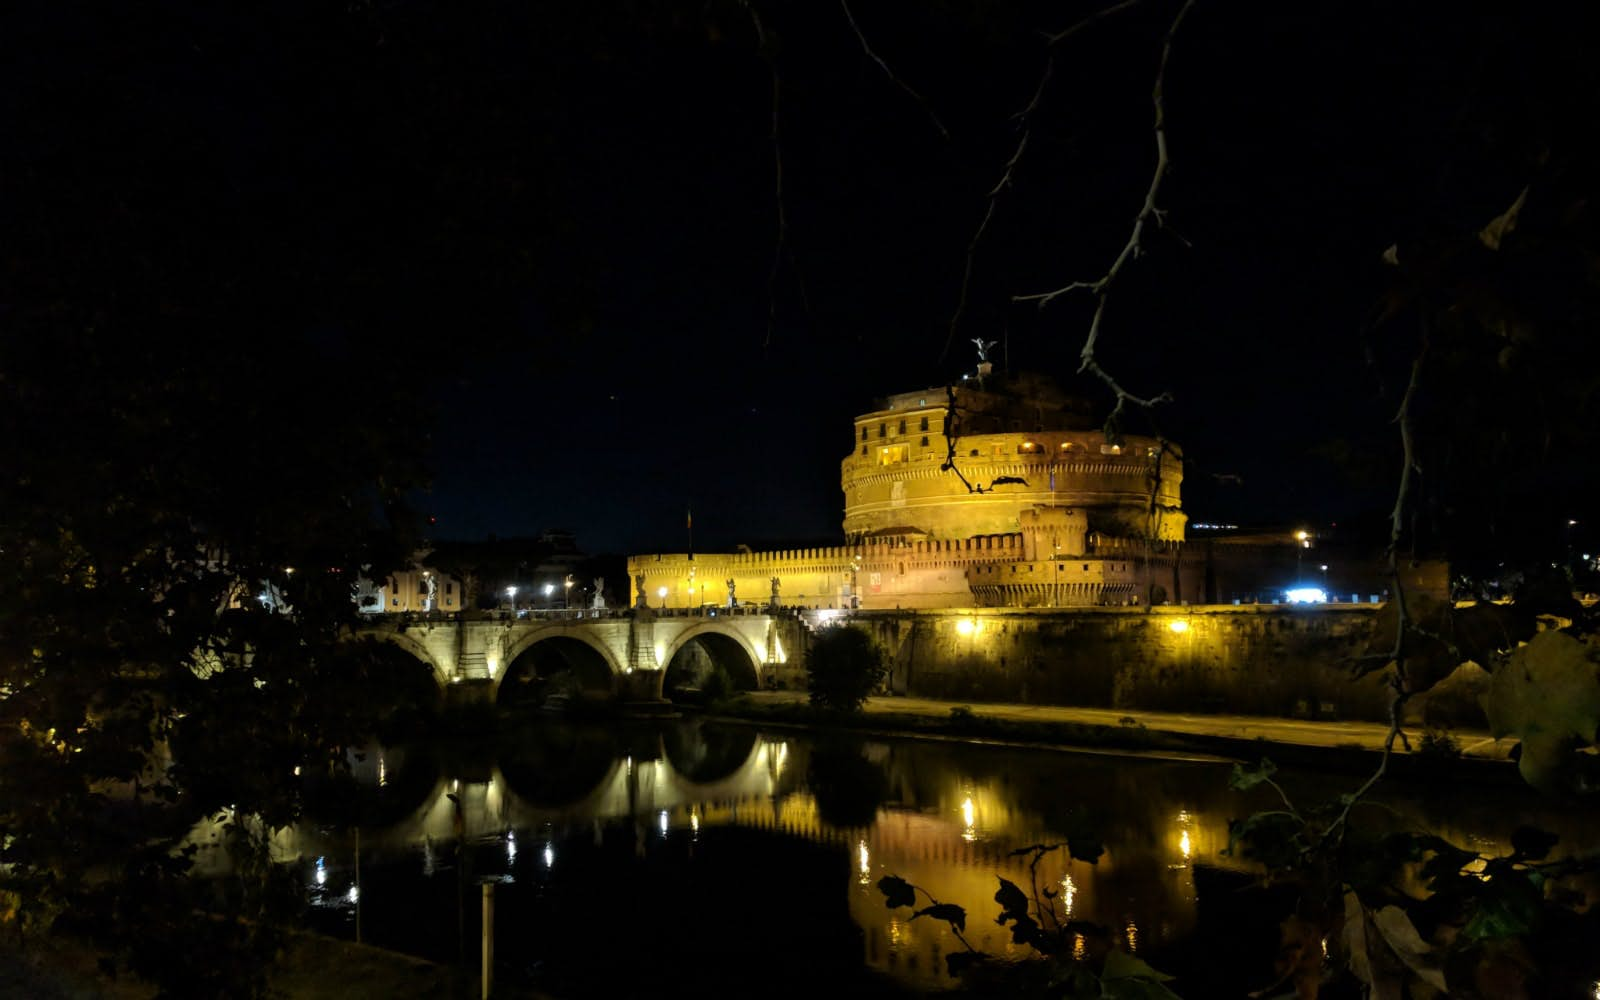 Ghosts of Rome: The Haunting Stories image